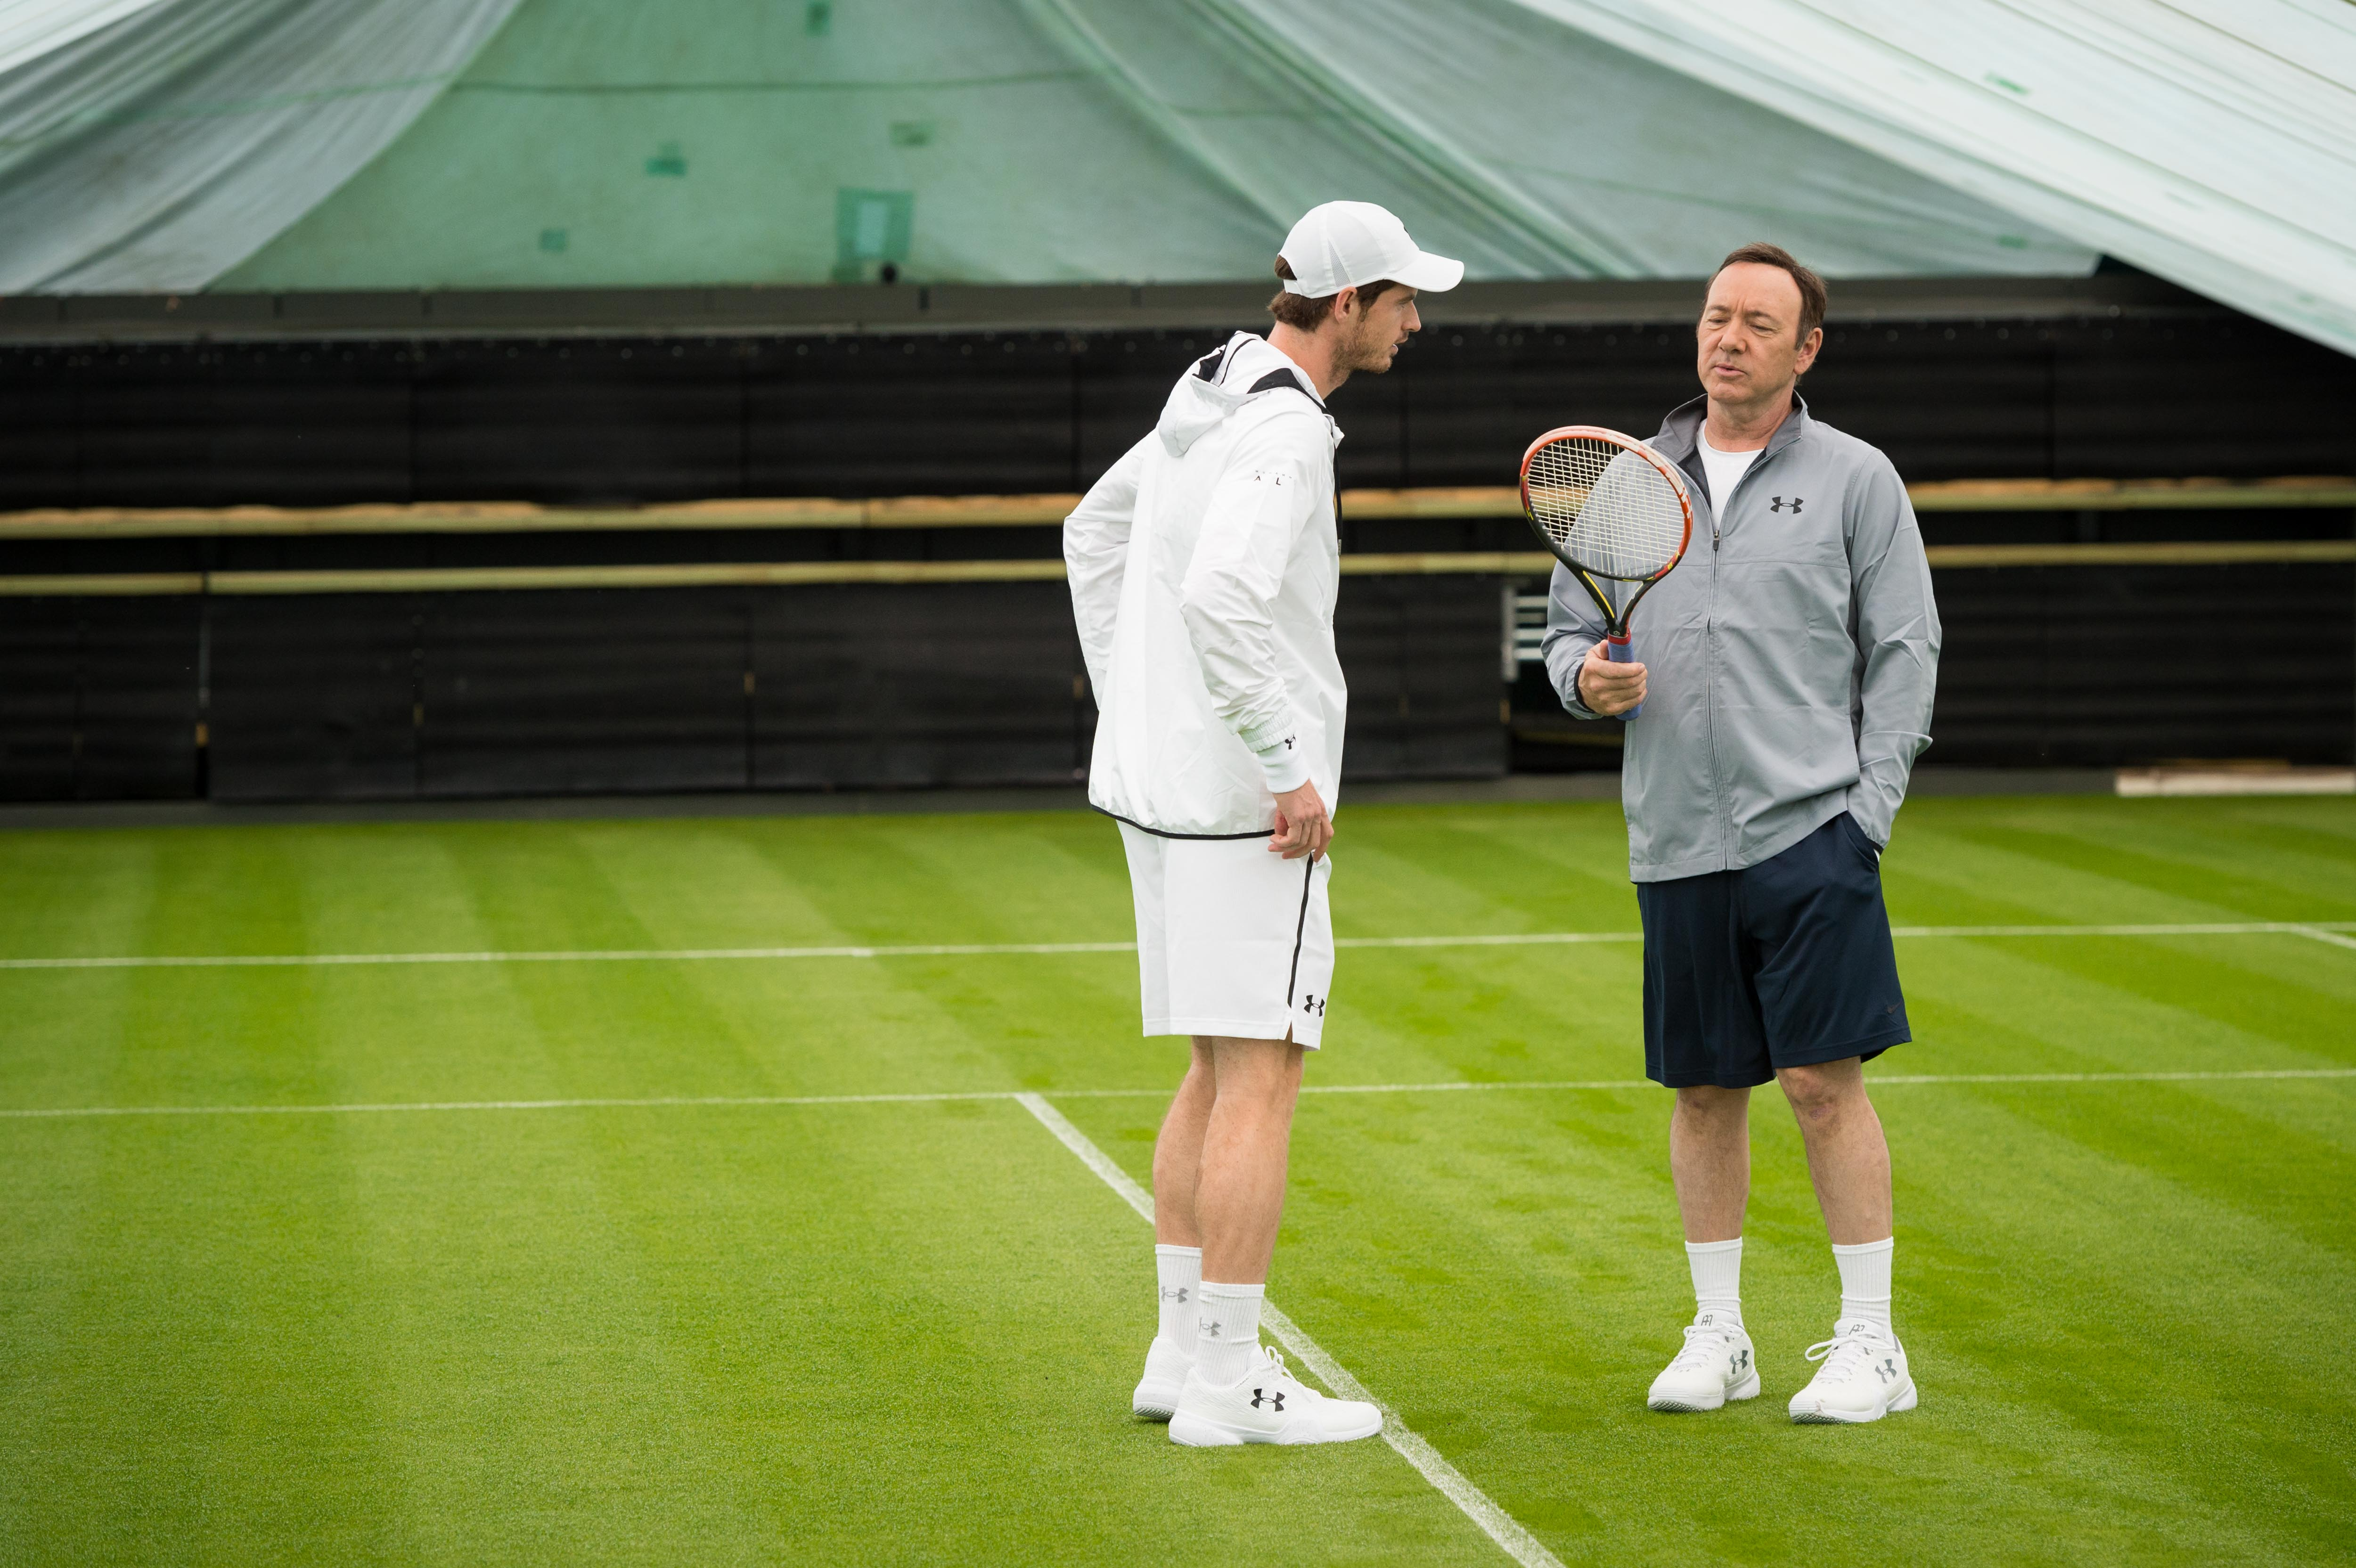 LONDON, UNITED KINGDOM - JUNE 20: Kicking off his campaign for The Championships at Wimbledon 2016, Andy Murray is joined by Kevin Spacey on the All England Club's Centre Court, to deliver a powerful message as part of WWF's campaign to help double the number of wild tigers by 2022, on June 20 in London, United Kingdom. This comes as WWF says that 2016 could be a pivotal year for tiger conservation as populations slowly start to recover. (Photo by Ian Gavan/Getty Images for WWF - UK)